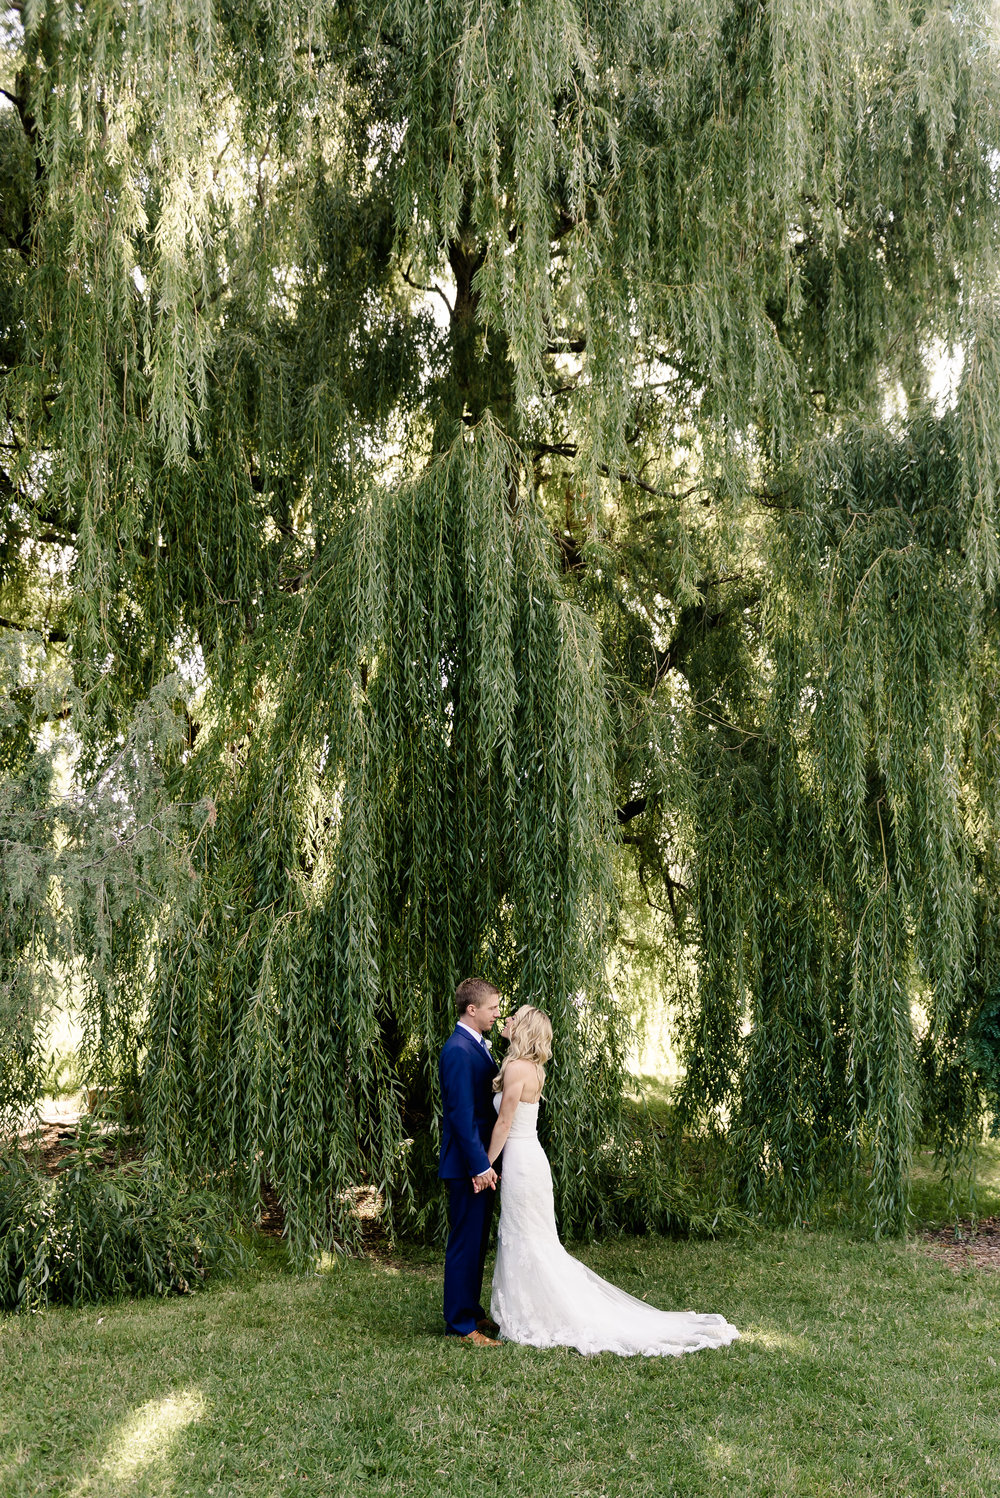 MN Landscape Arboretum Wedding Bride and Groom at Willow Trees - Chaska MN Wedding Photographer